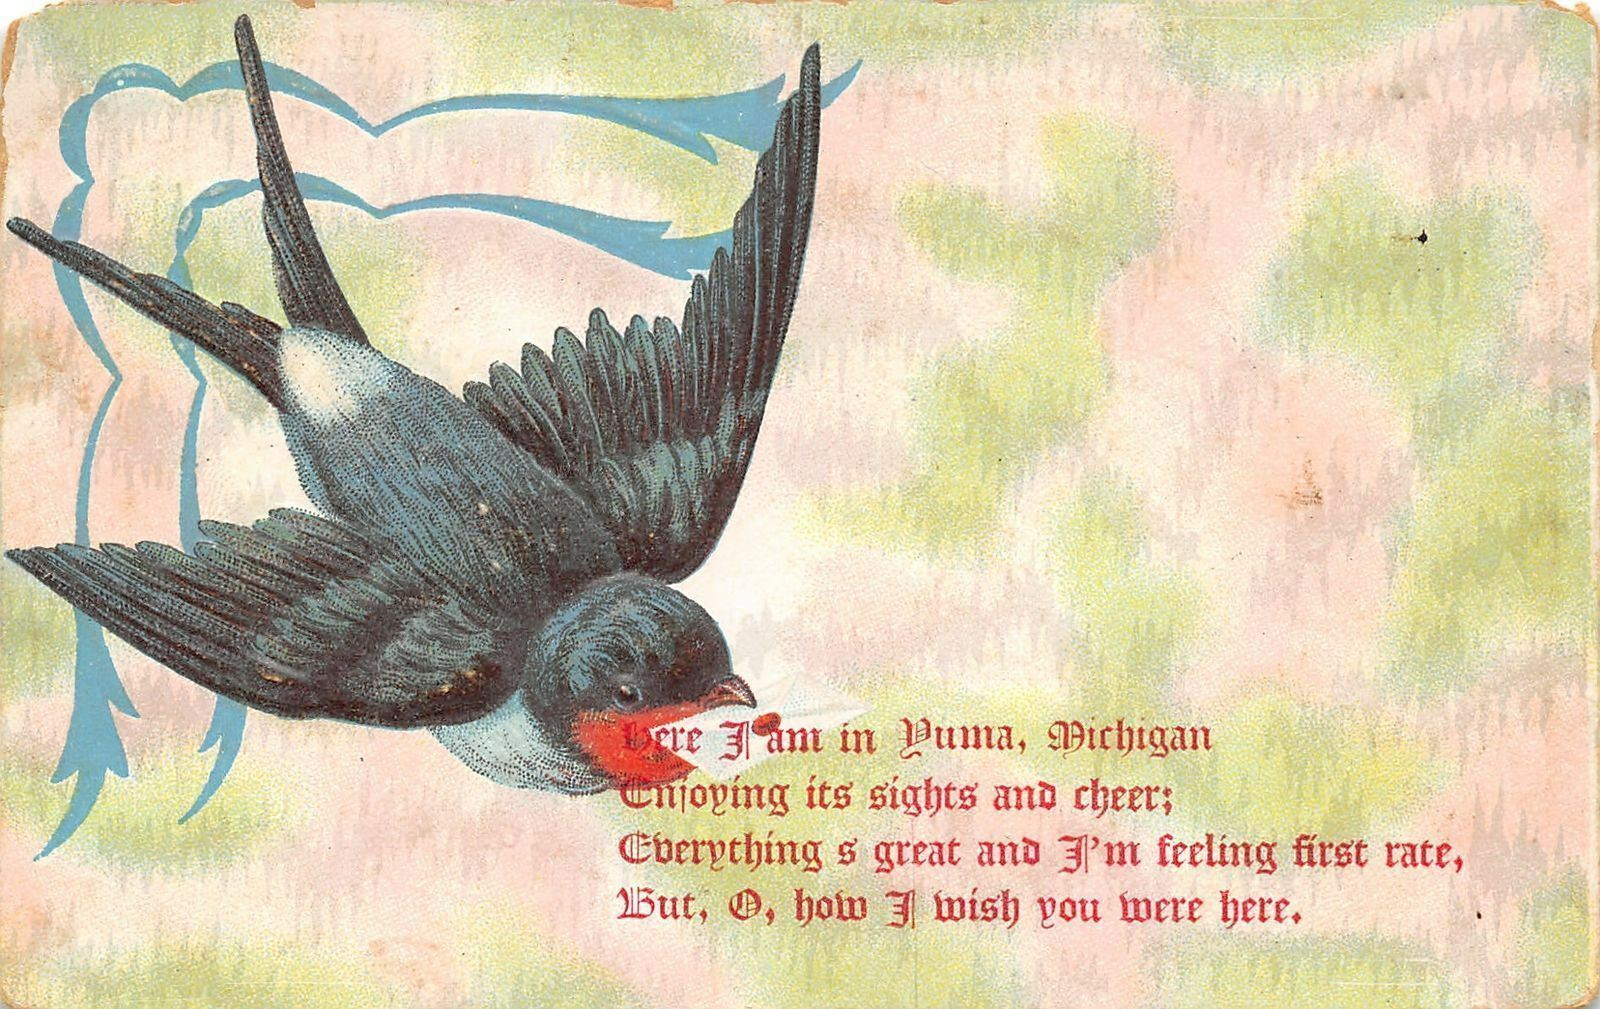 Yuma Mesick MI Barn Swallow Delivers Poem of Cheer~How I Wish You Were Here 1913